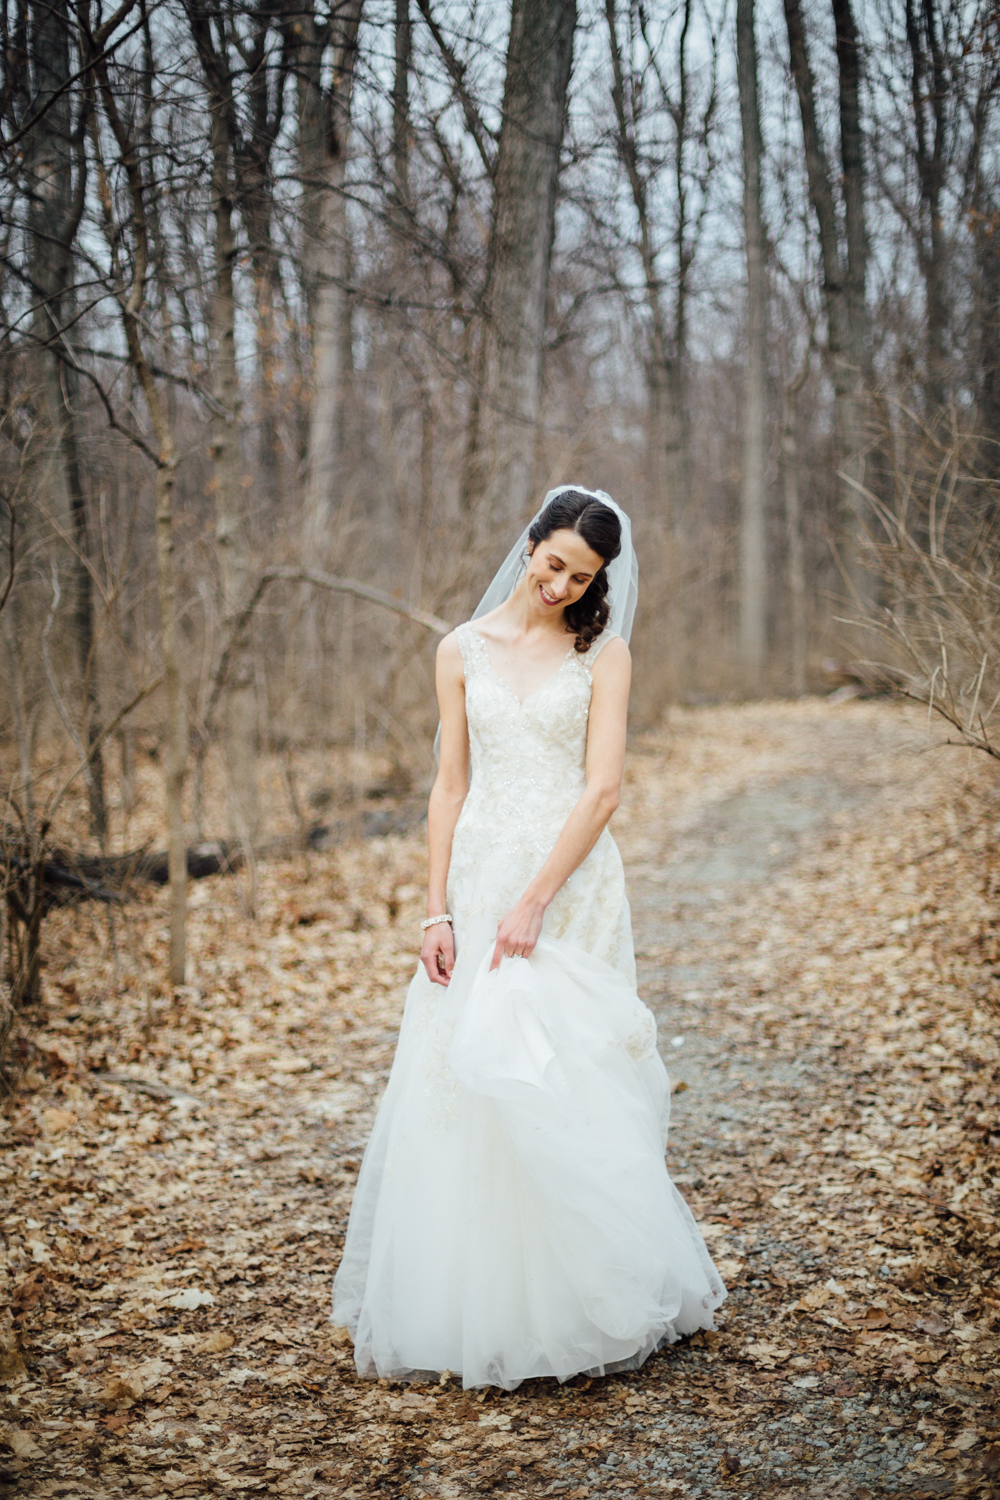 Fun, Intimate Spring Wedding by Corrie Mick Photography-73.jpg